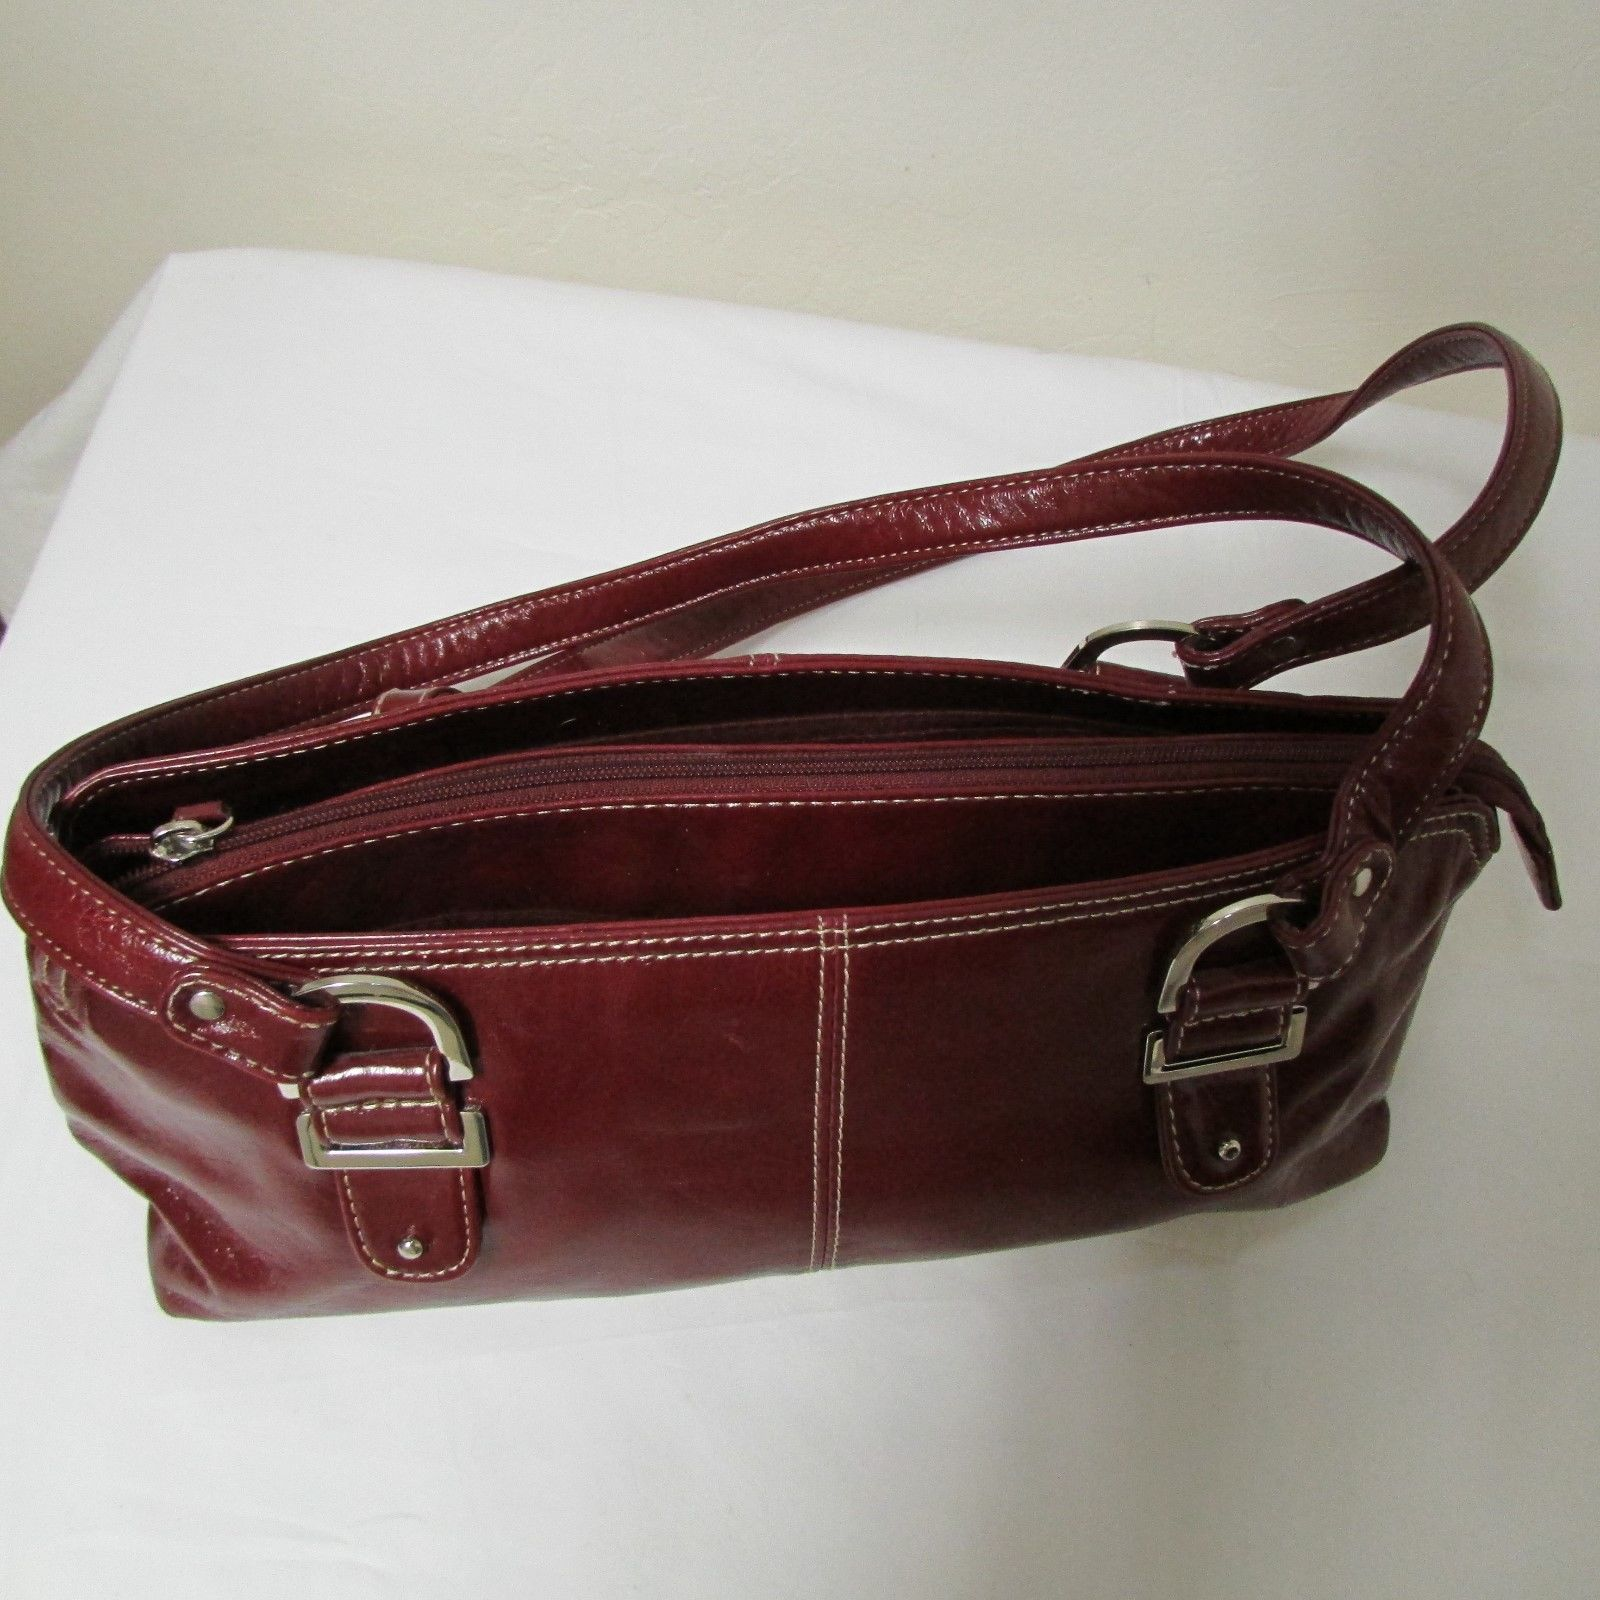 Relic Brand Cranberry Red Faux Leather Shoulder Bag Size Small image 5